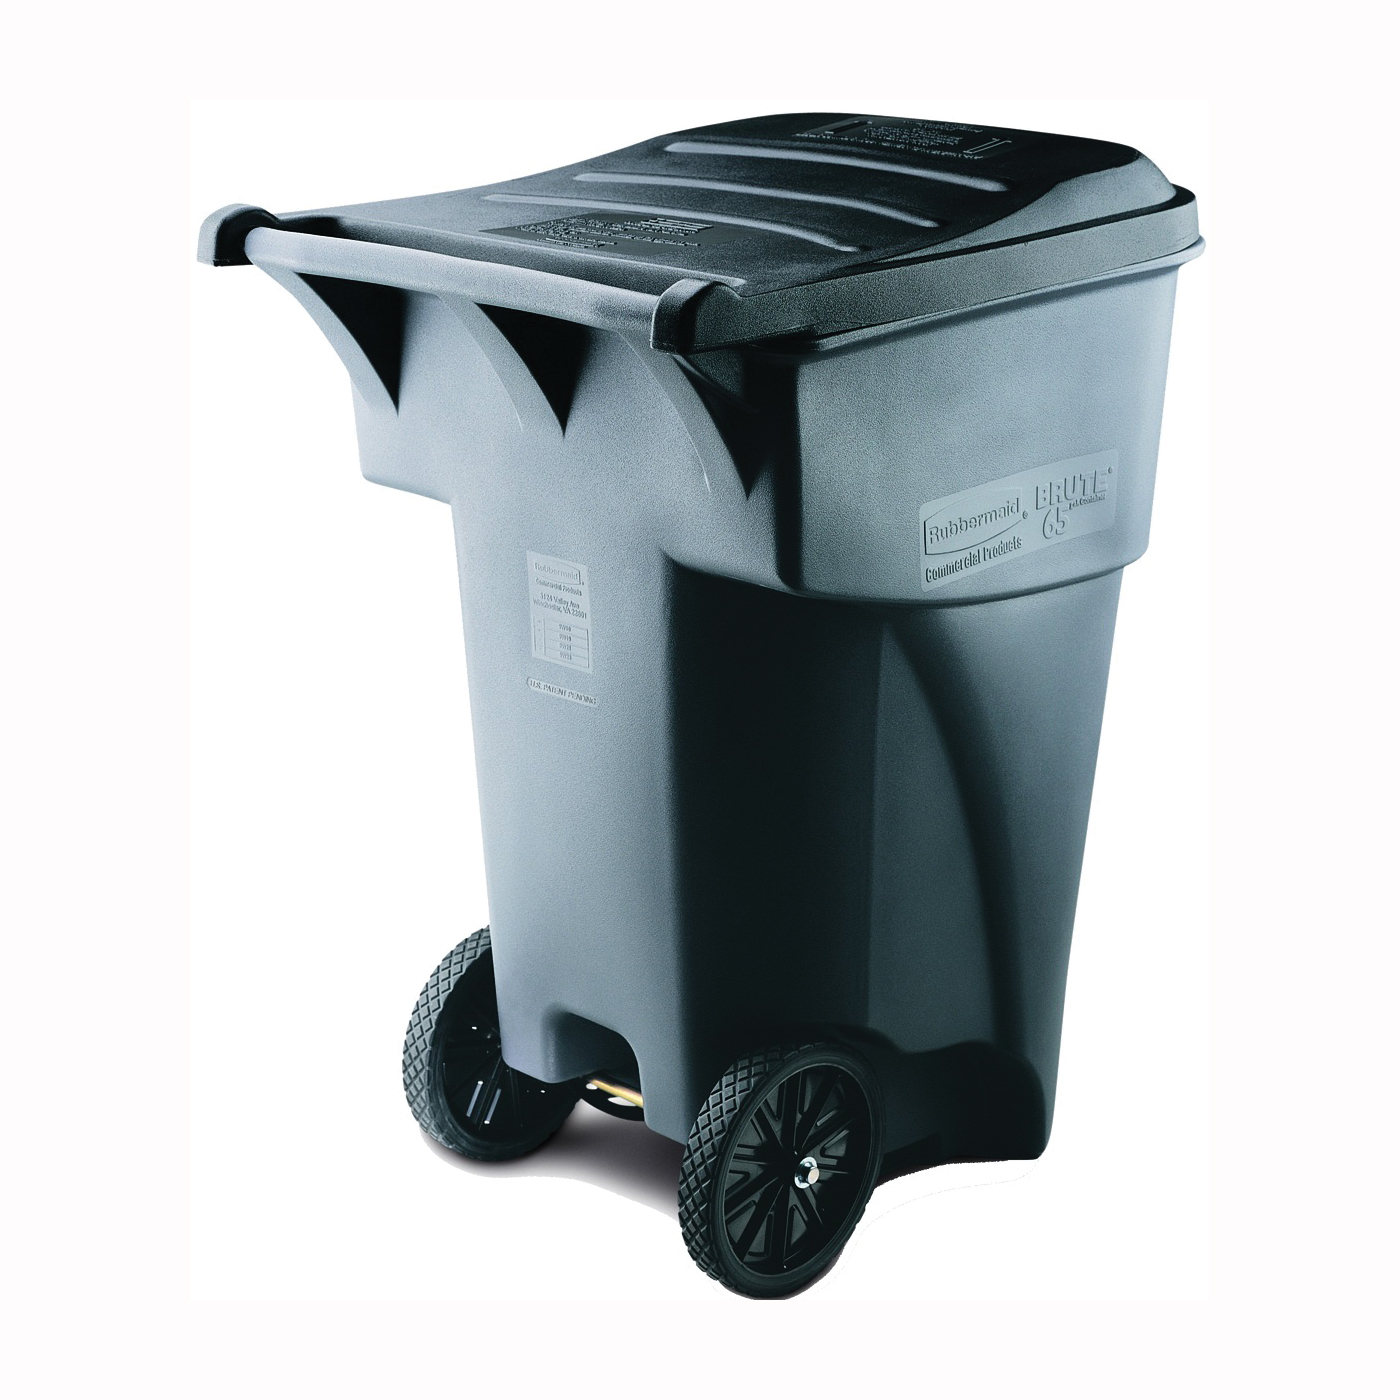 Picture of Rubbermaid FG9W2200GRAY Rollout Container, 95 gal Capacity, Polyethylene, Gray, Lift Up Closure